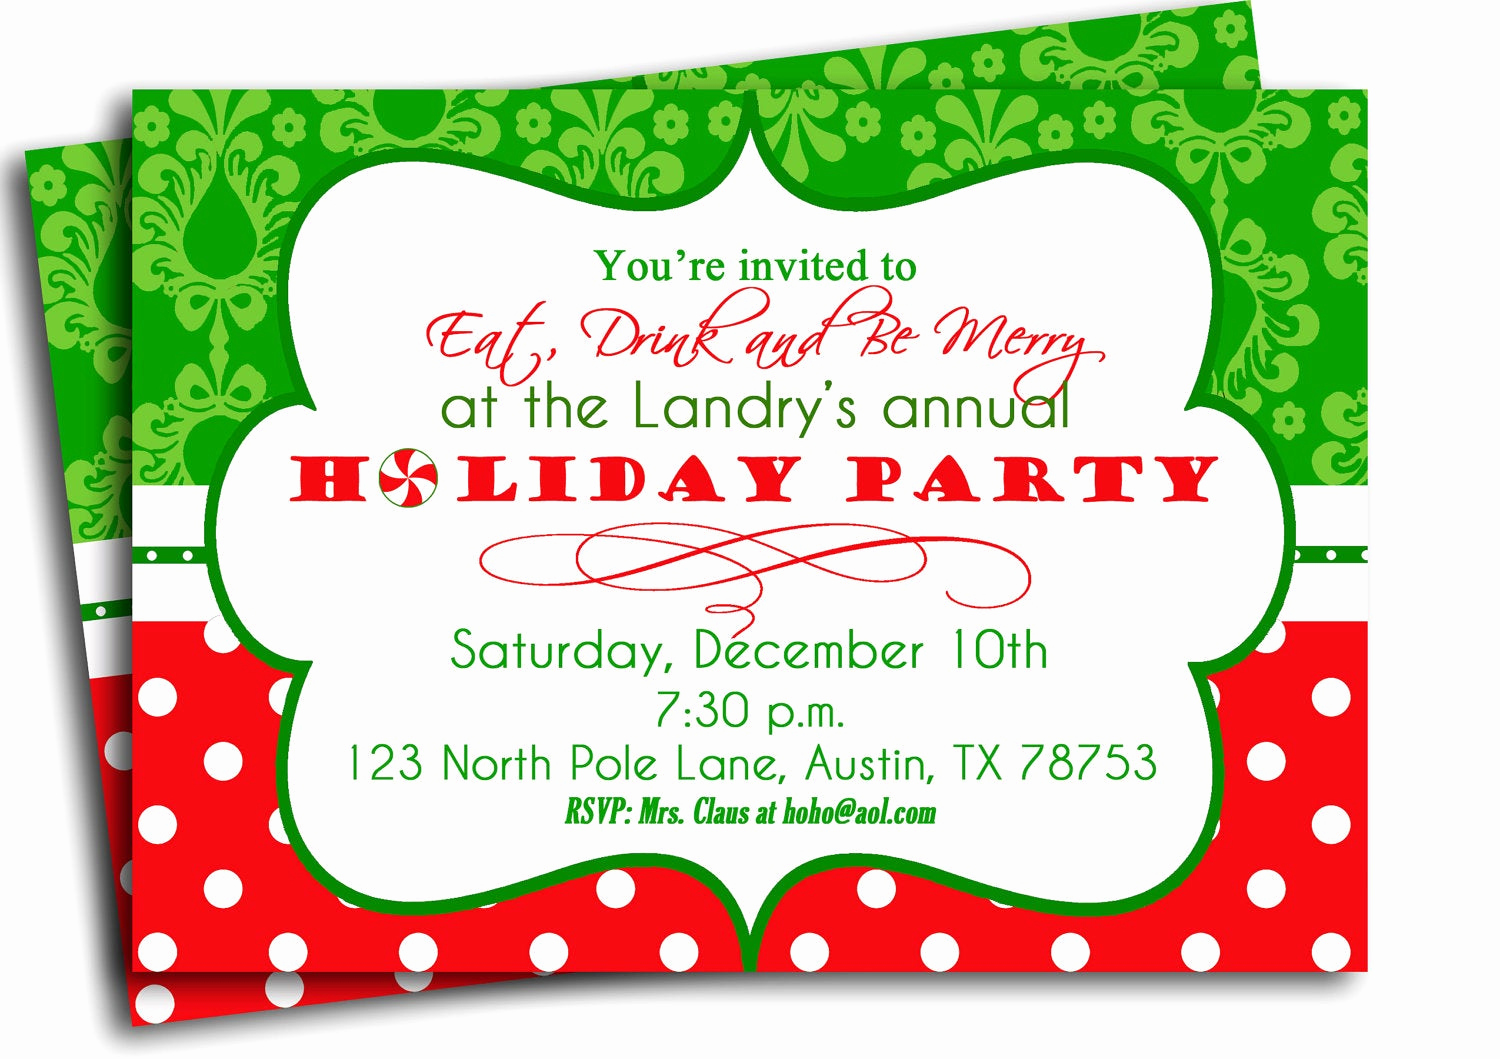 Christmas Party Invitation Template Awesome Christmas Party Invitation Printable Traditional Holiday